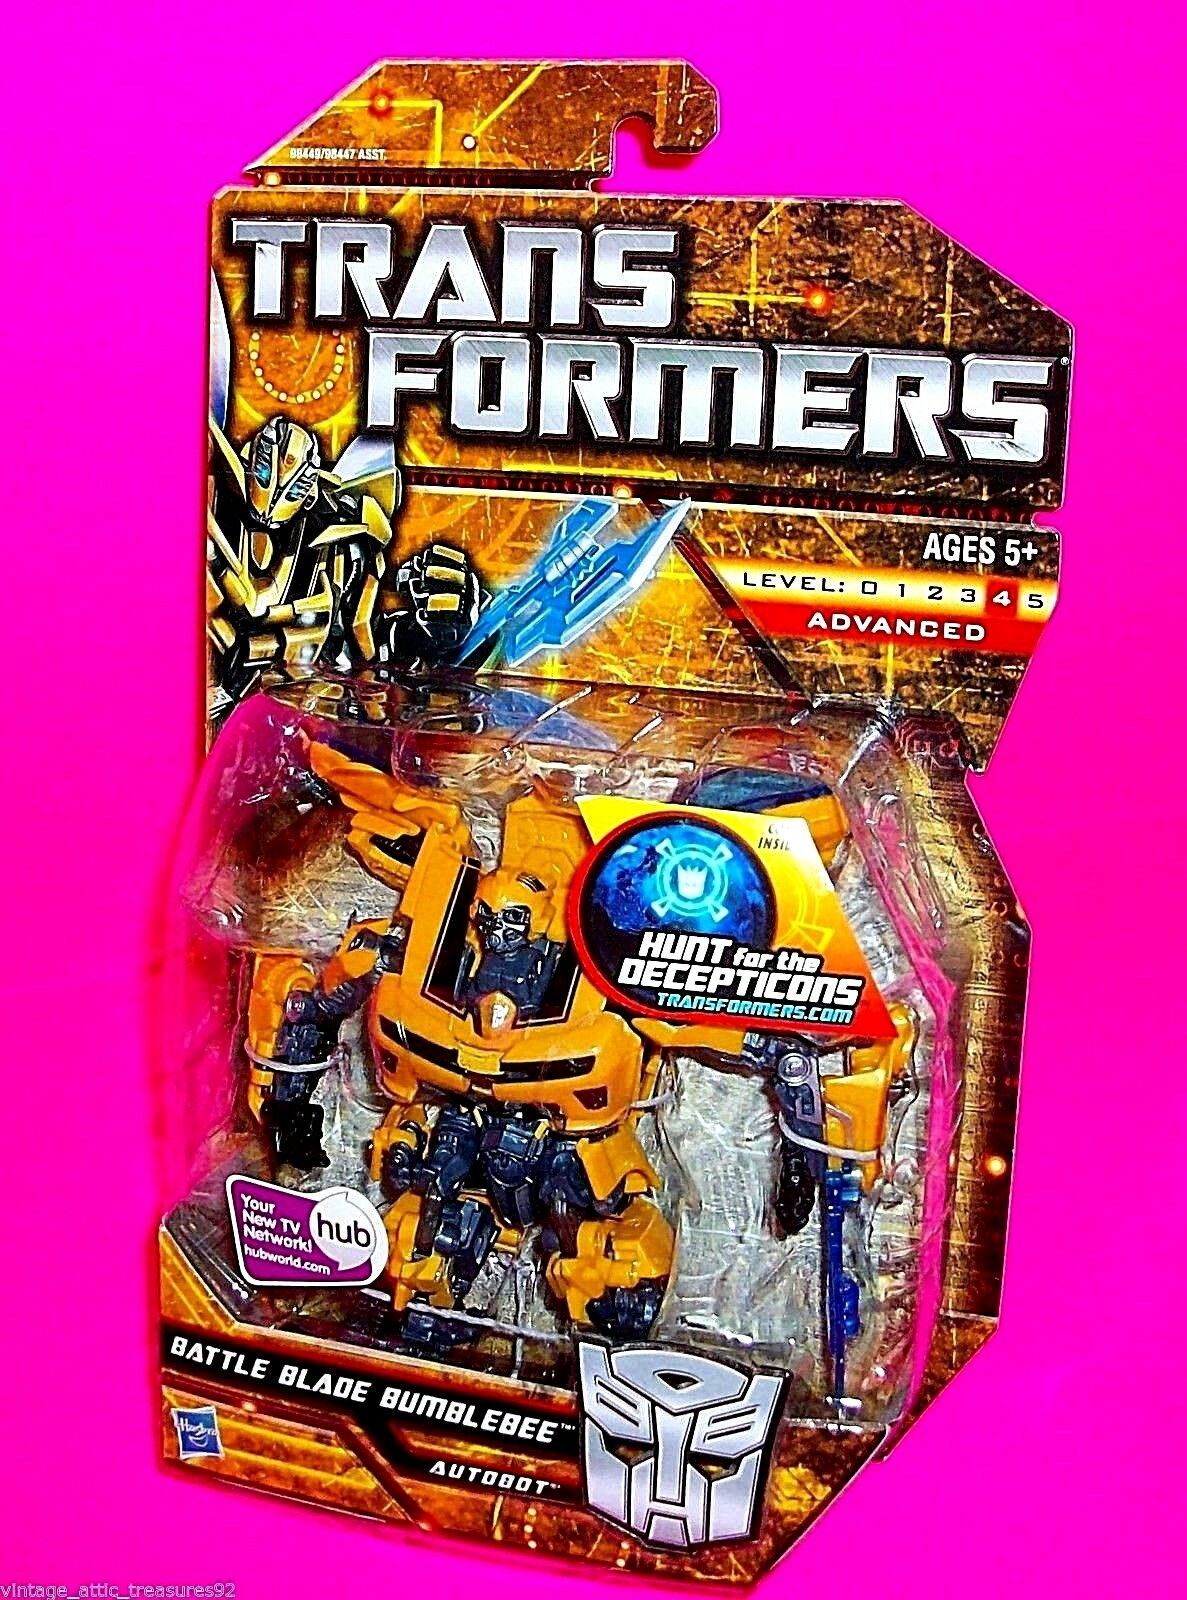 BATTLE BLADE  BUMBLEBEE  TRANSFORMERS HFTD Hunt for the Decepticons Movie Camaro